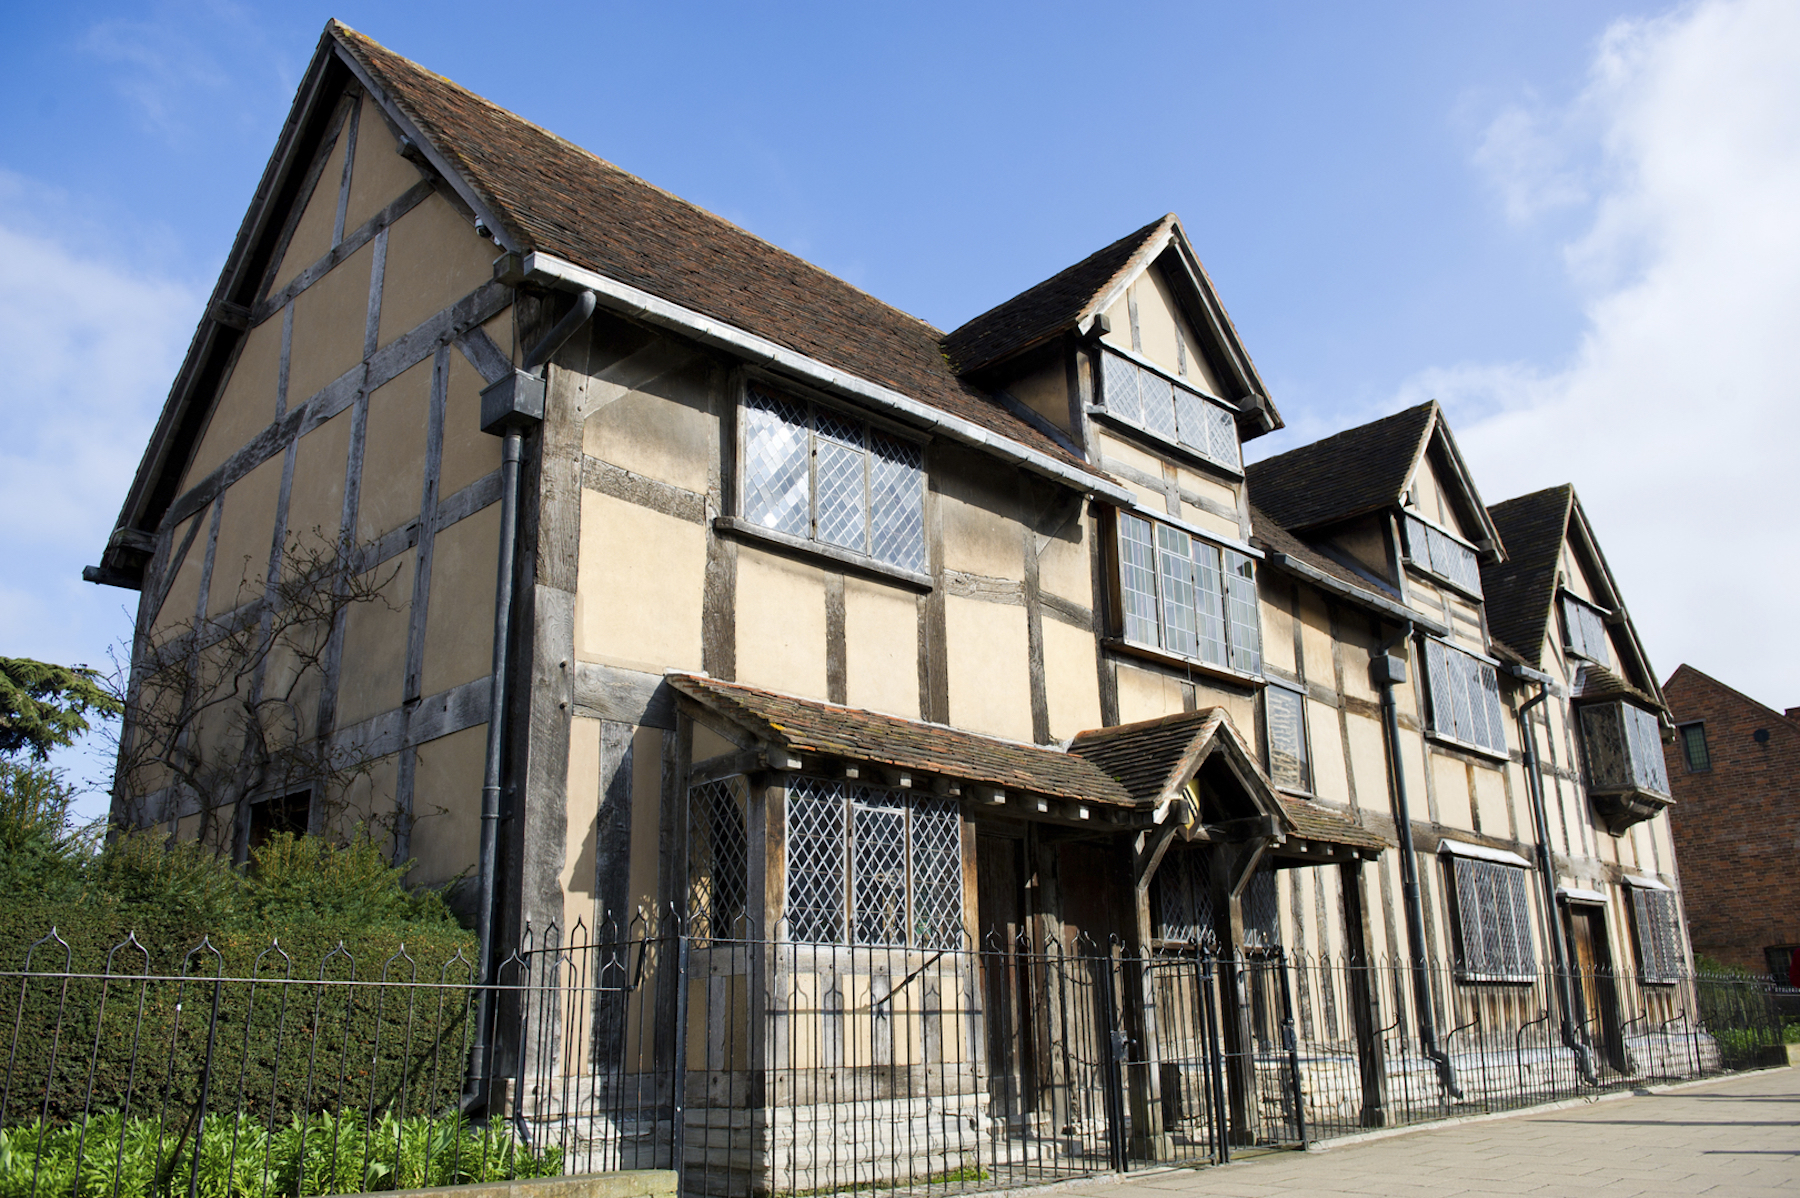 Shakespeare's Birth Place - VisitEngland/Shakespeare's Birth Trust/Amy Murrell